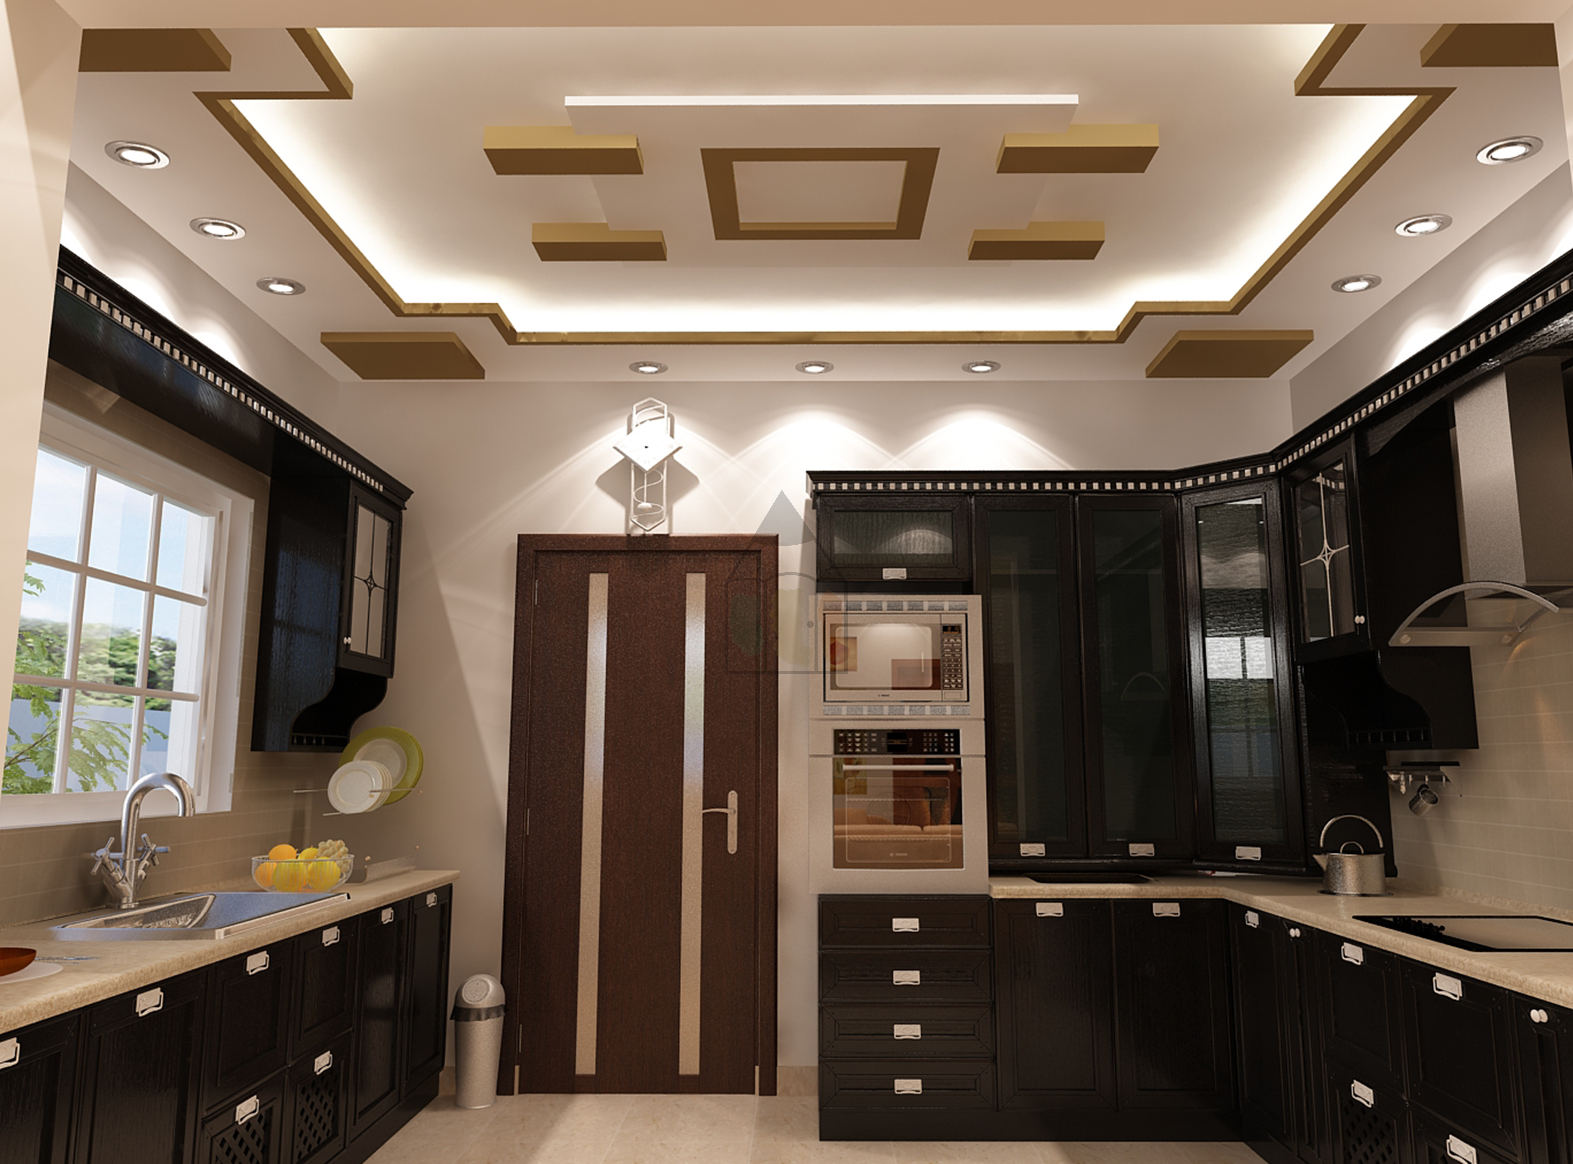 Pakistani kitchen design kitchen design pinterest for Kitchen design pakistan